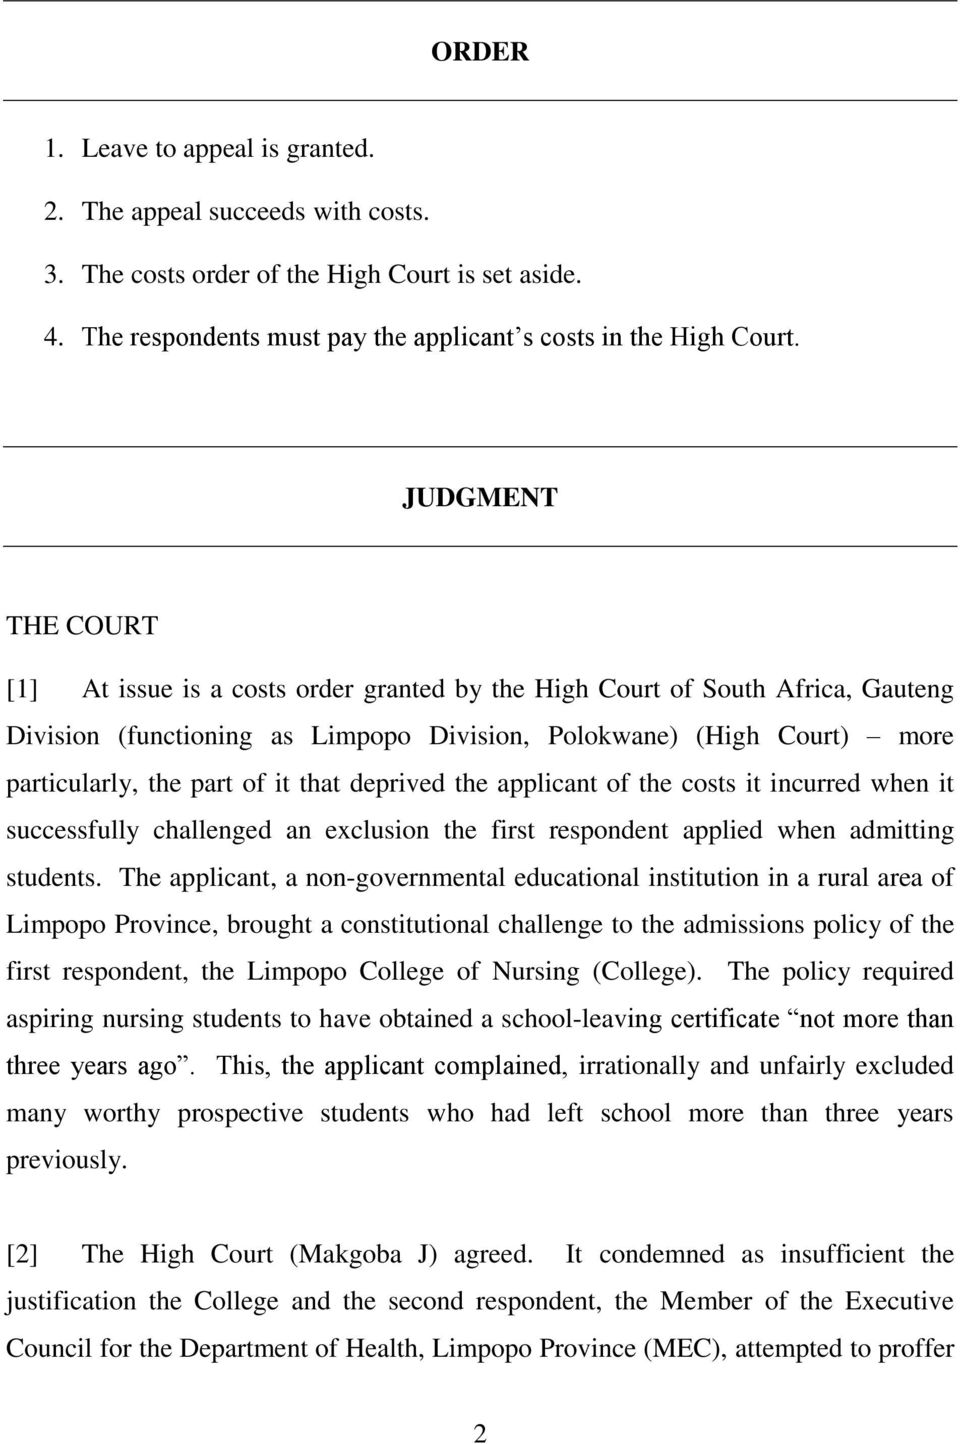 it that deprived the applicant of the costs it incurred when it successfully challenged an exclusion the first respondent applied when admitting students.